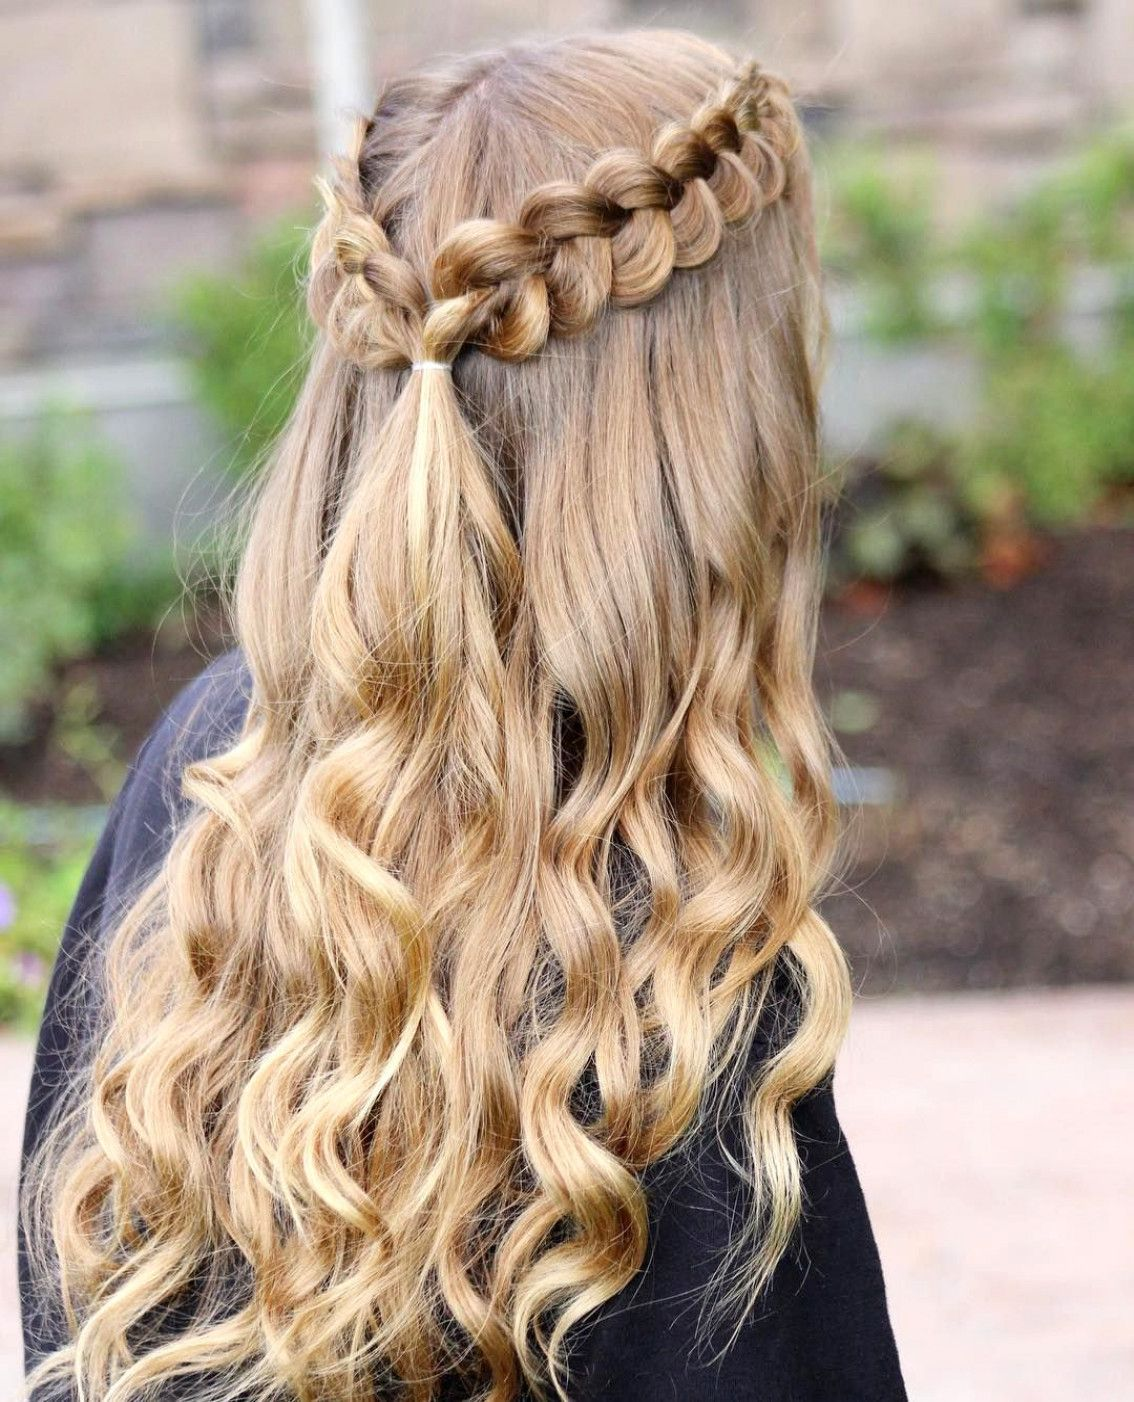 Naturalcurls Cheer Hair In 2019 Dance Hairstyles Braided Homecoming Hairstyles For Long Hair Homecoming Hairstyles Straight Homecoming H Simple Prom Hair Prom Hairstyles For Long Hair Dance Hairstyles